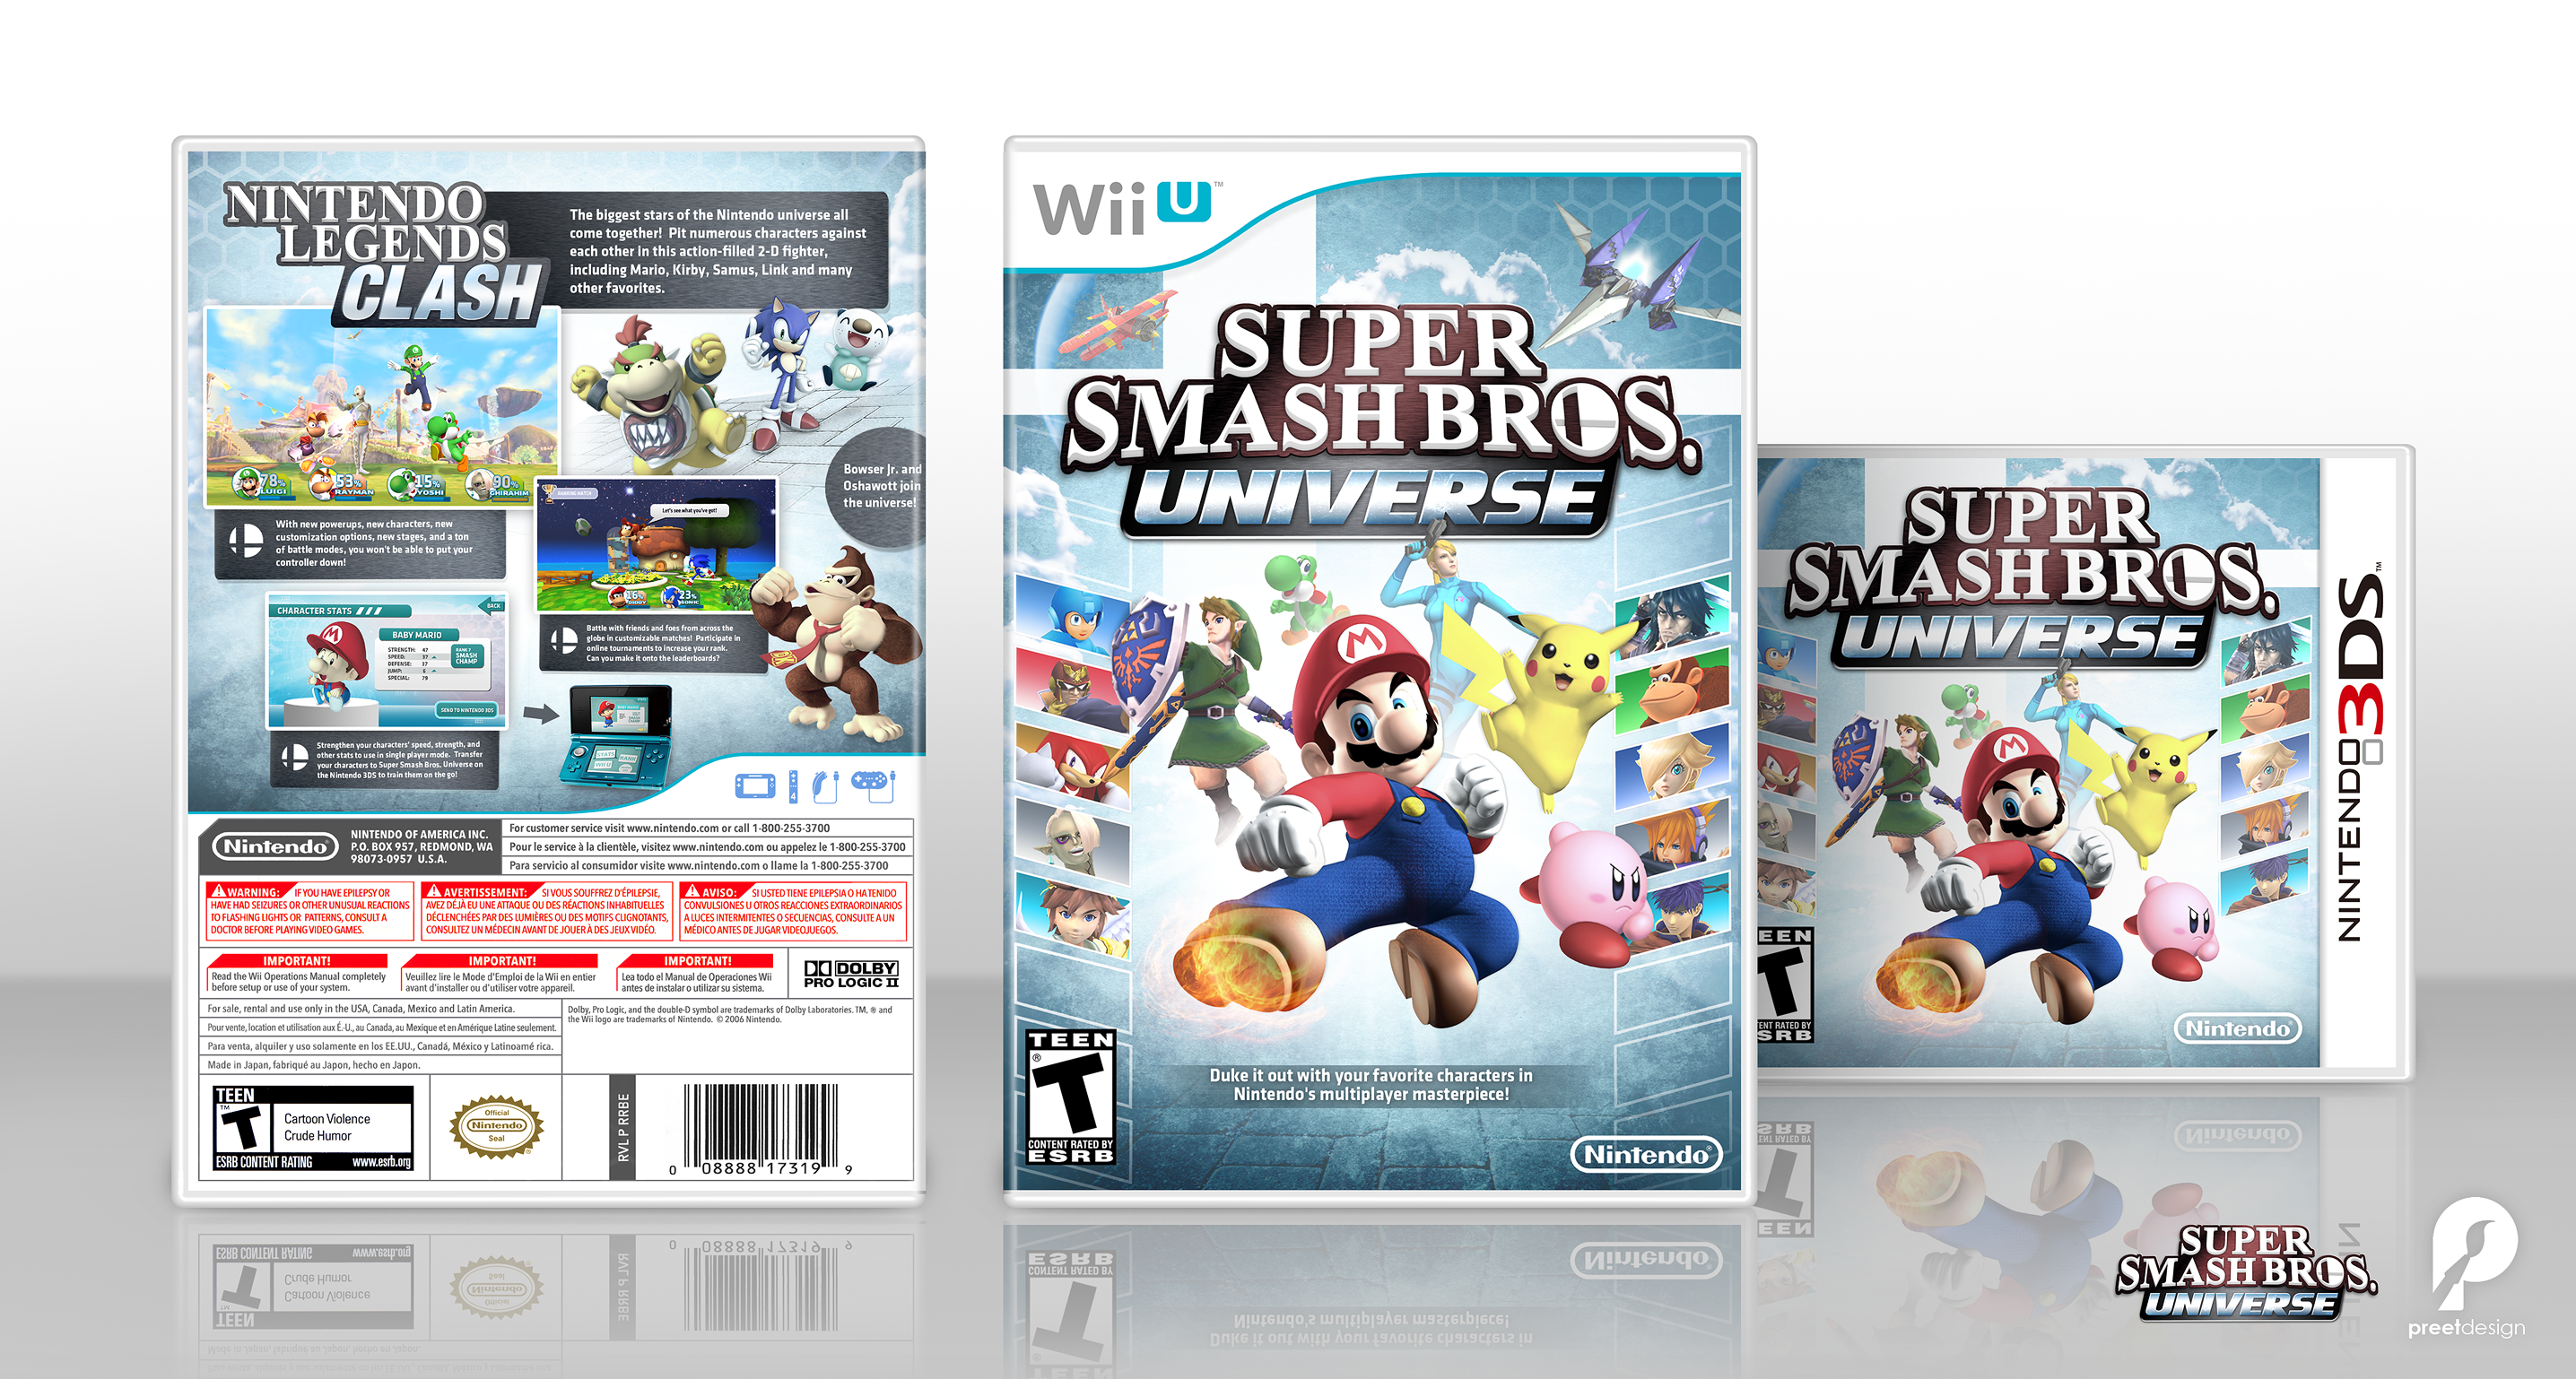 Super Smash Bros. Universe Wii U Box Art Cover by YoshiStar